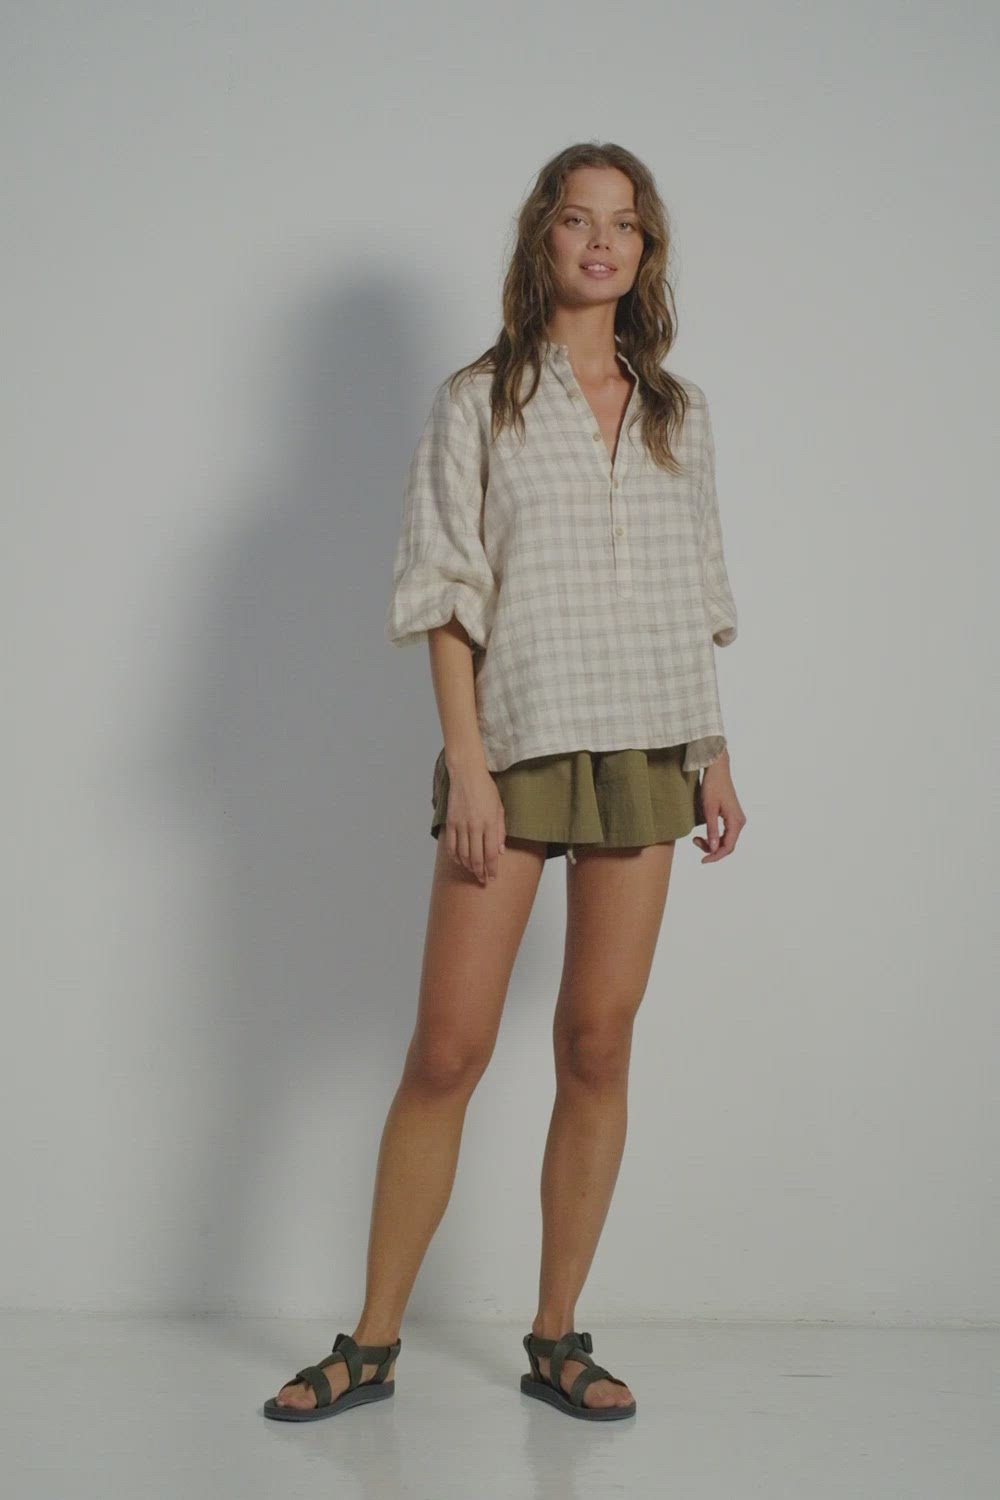 A woman wearing a summer look by Lilya: cotton check blouse and khaki shorts